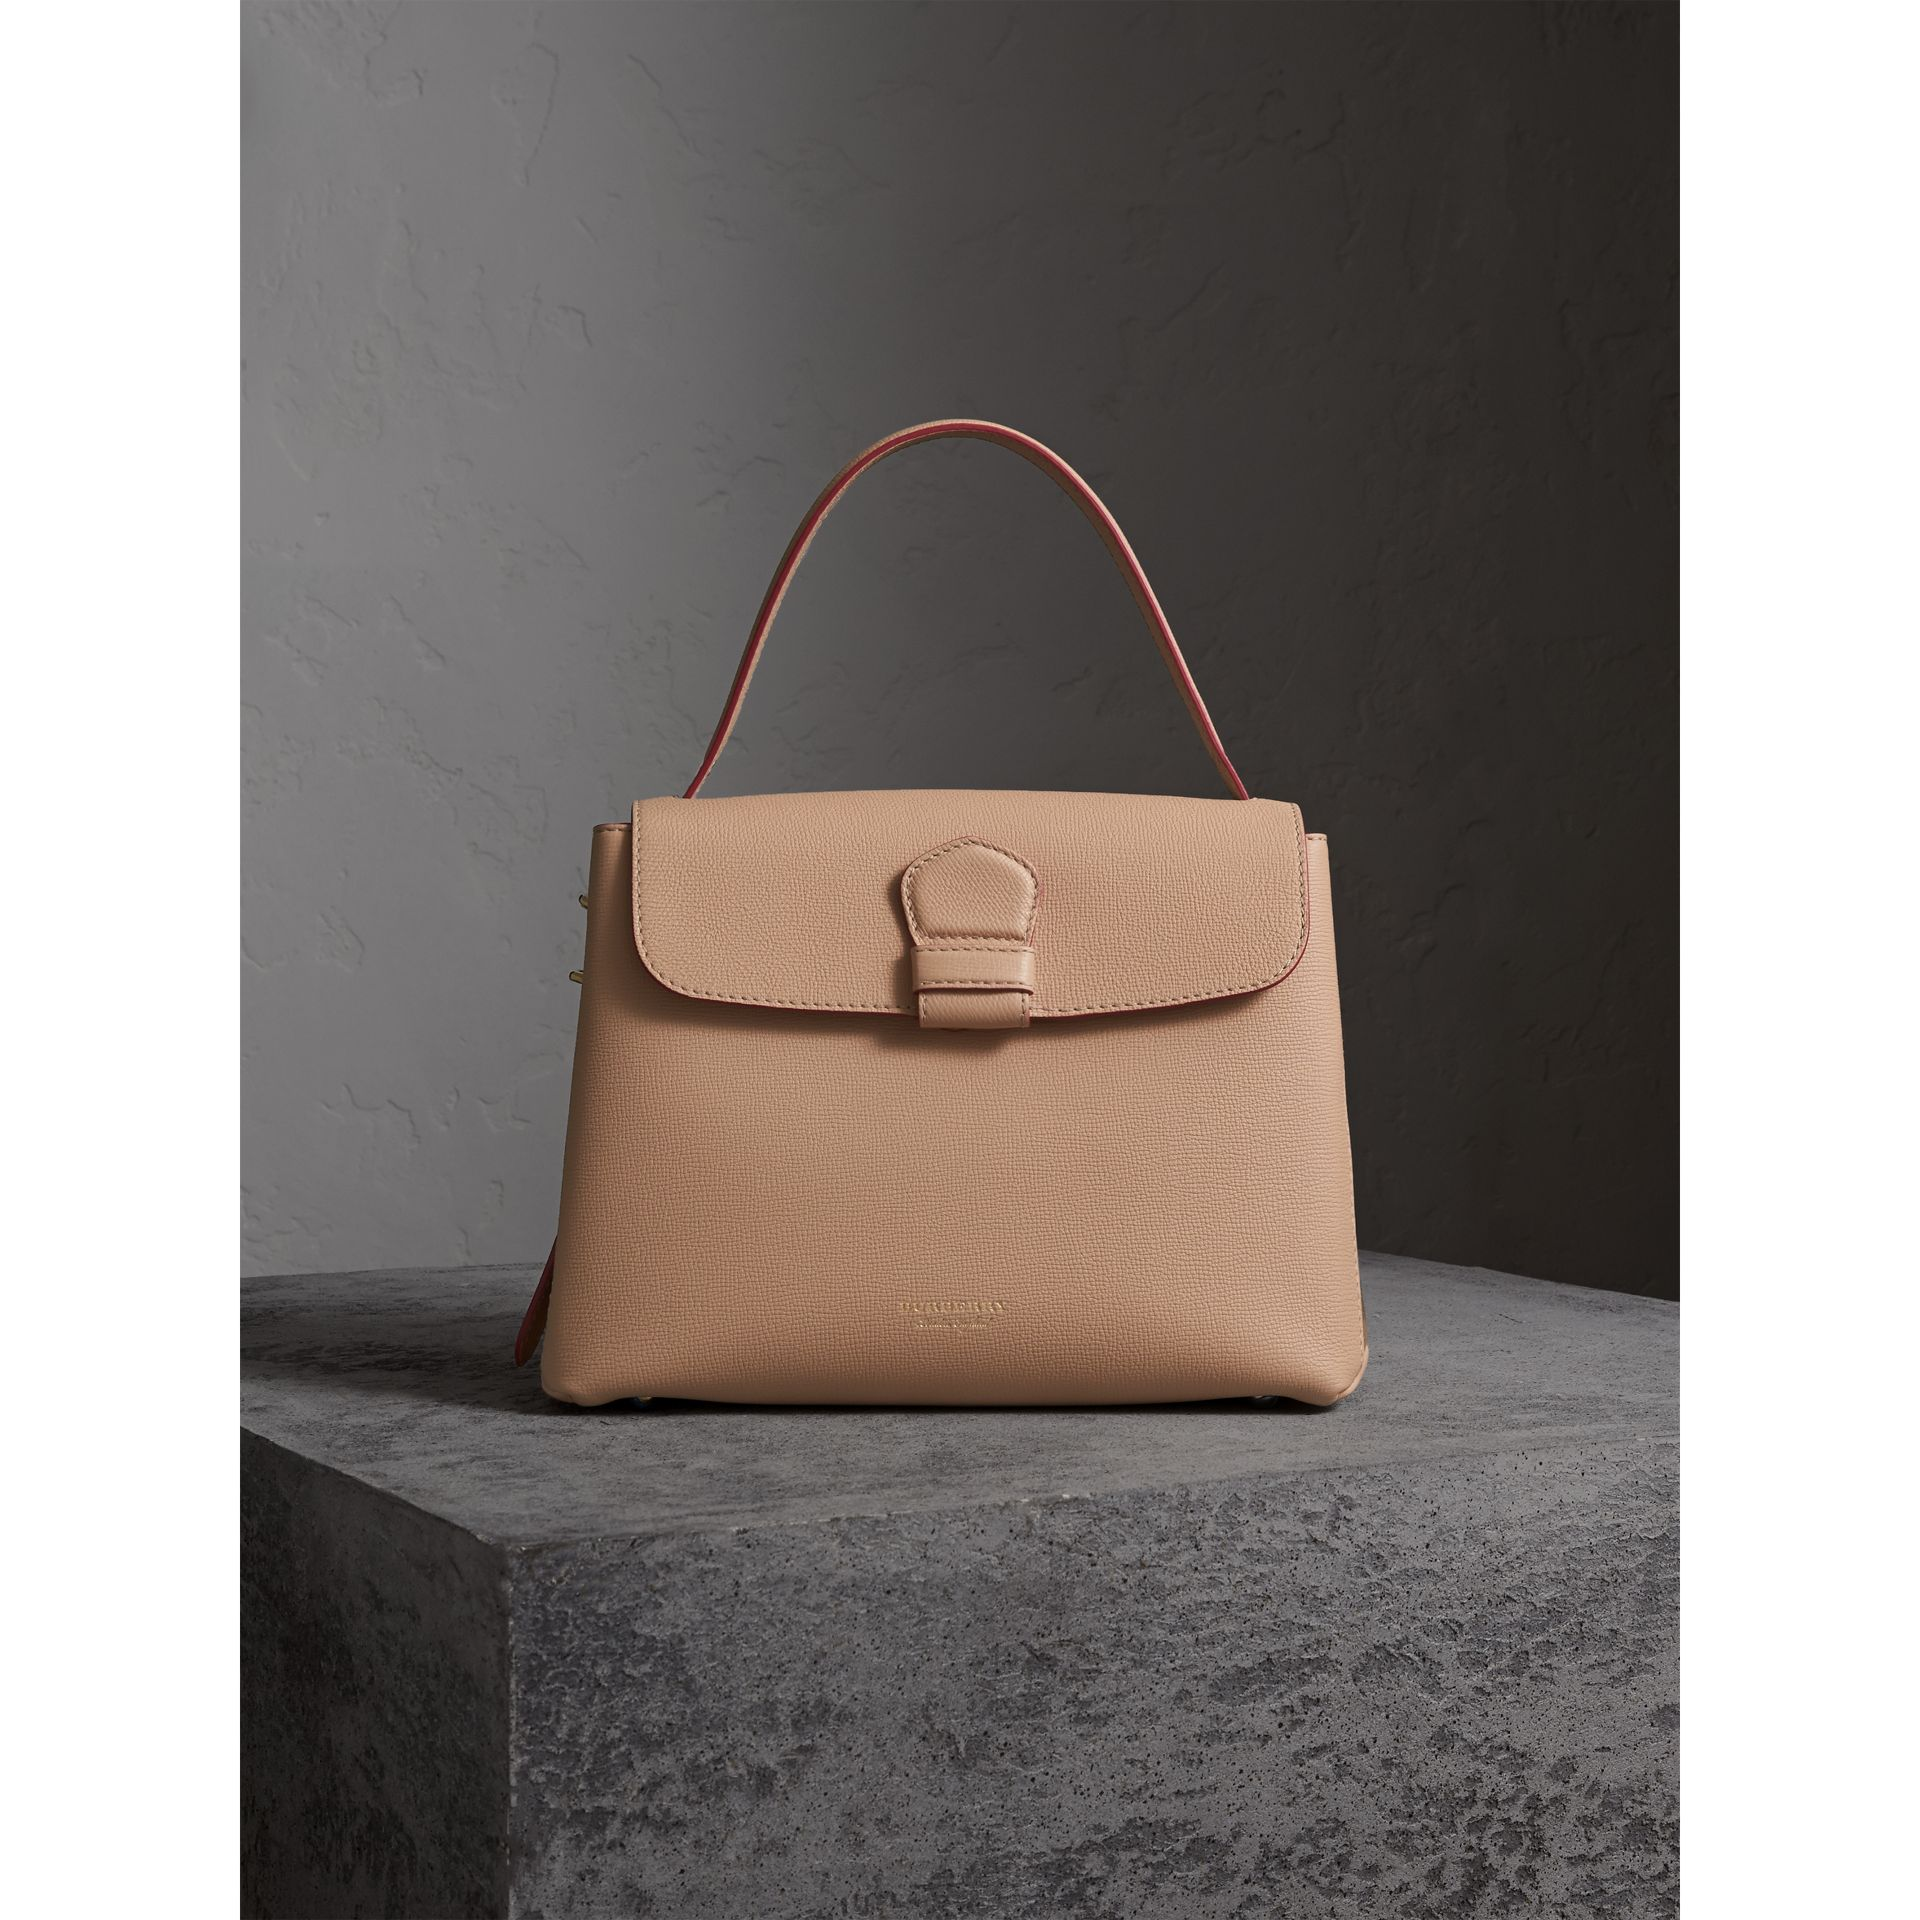 Medium Grainy Leather and House Check Tote Bag in Pale Apricot - Women | Burberry Singapore - gallery image 7